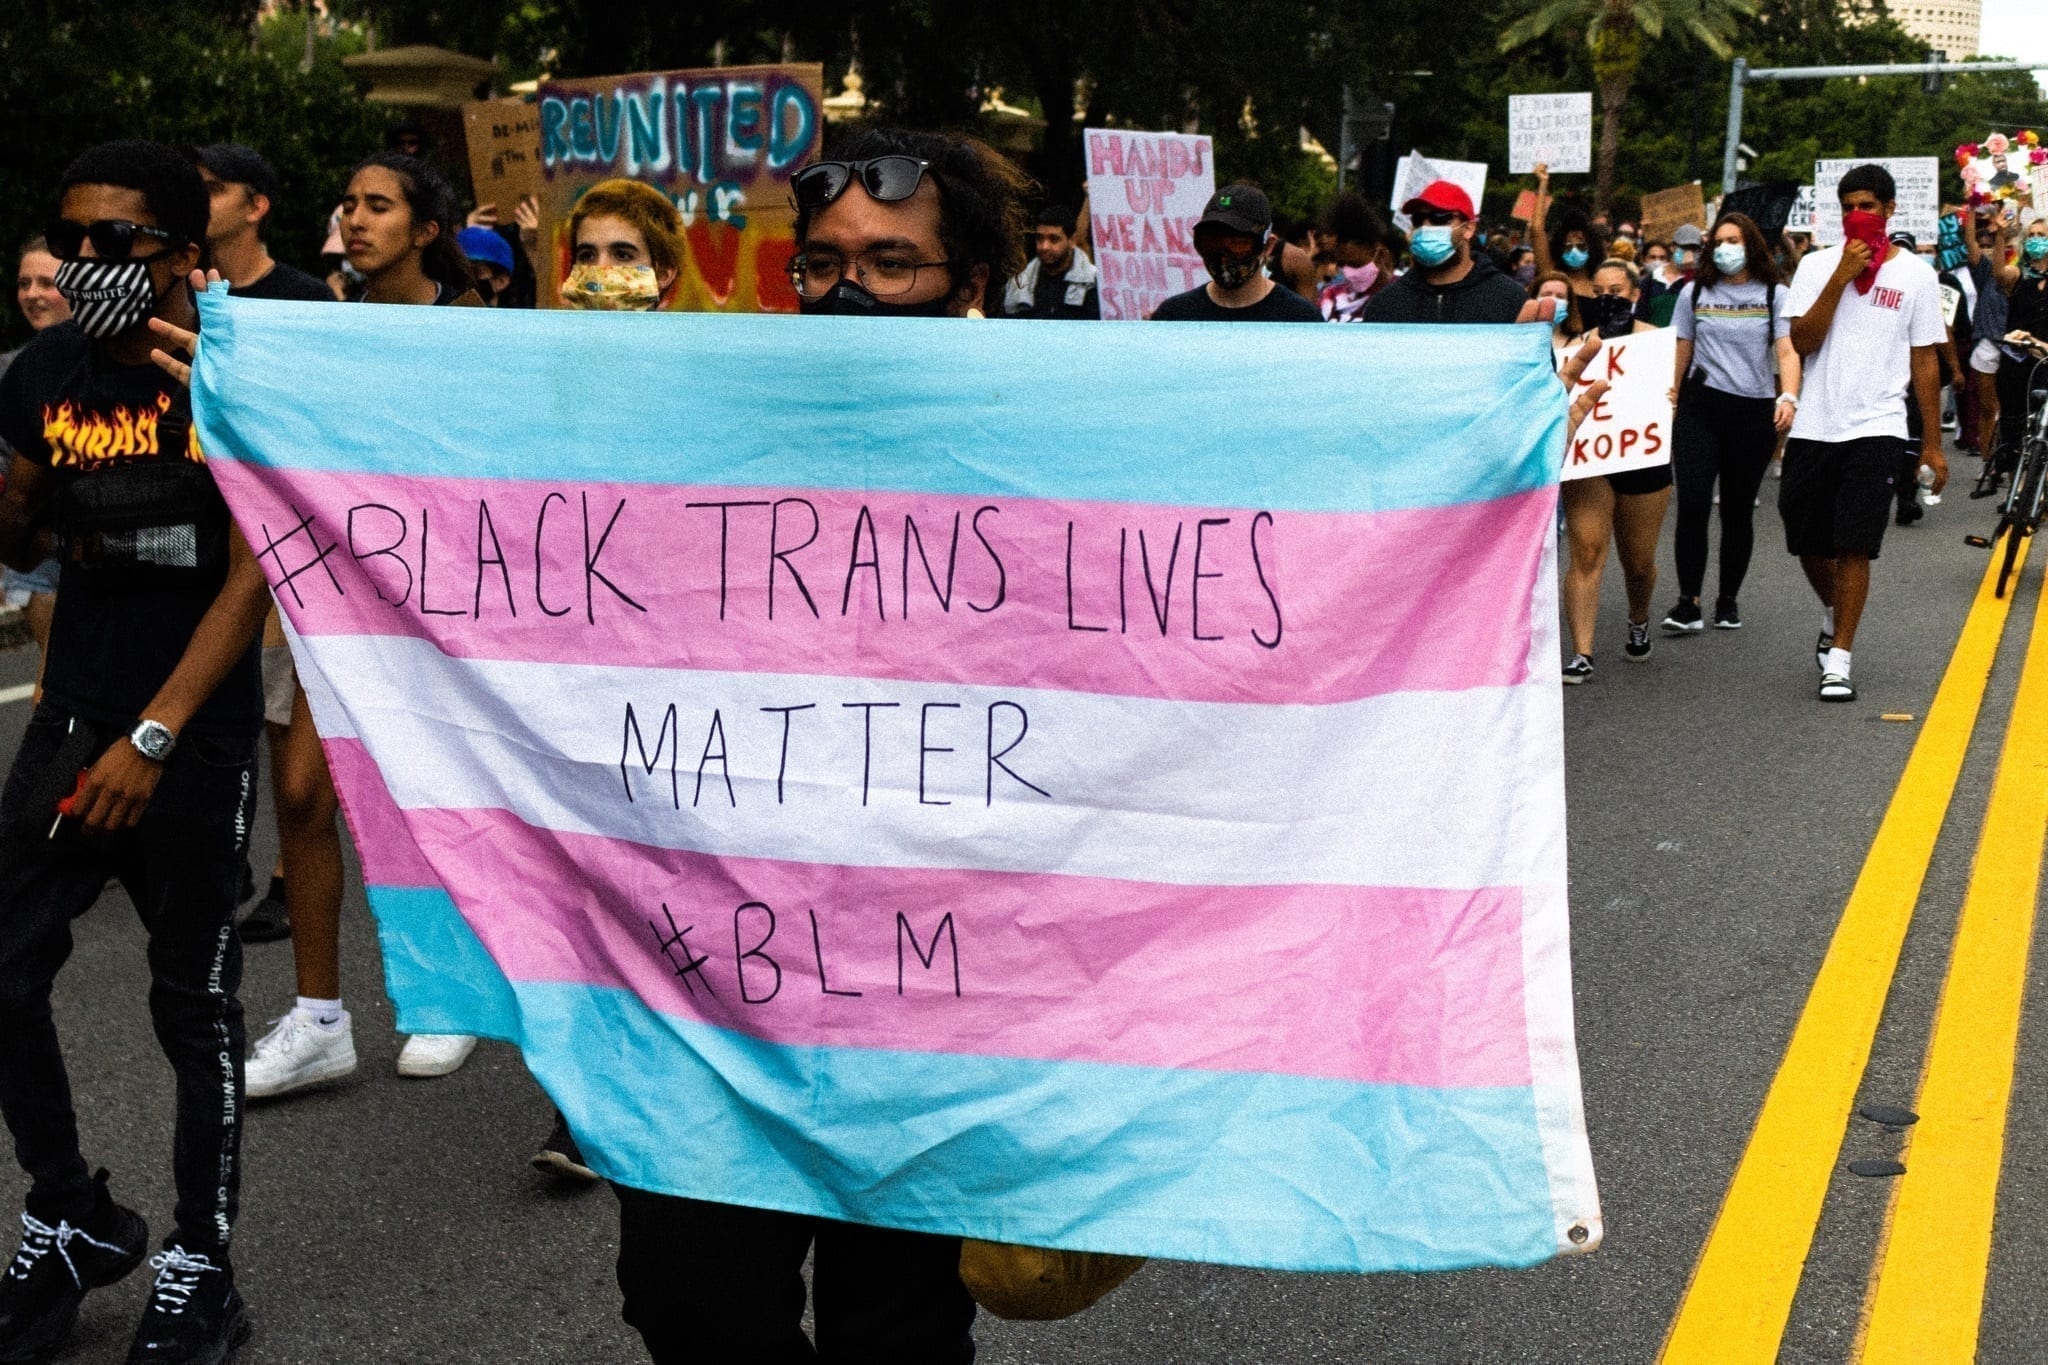 """In a protest, a person holds a blue, pink, and white flag that reads """"Black Trans Lives Matter BLM"""""""